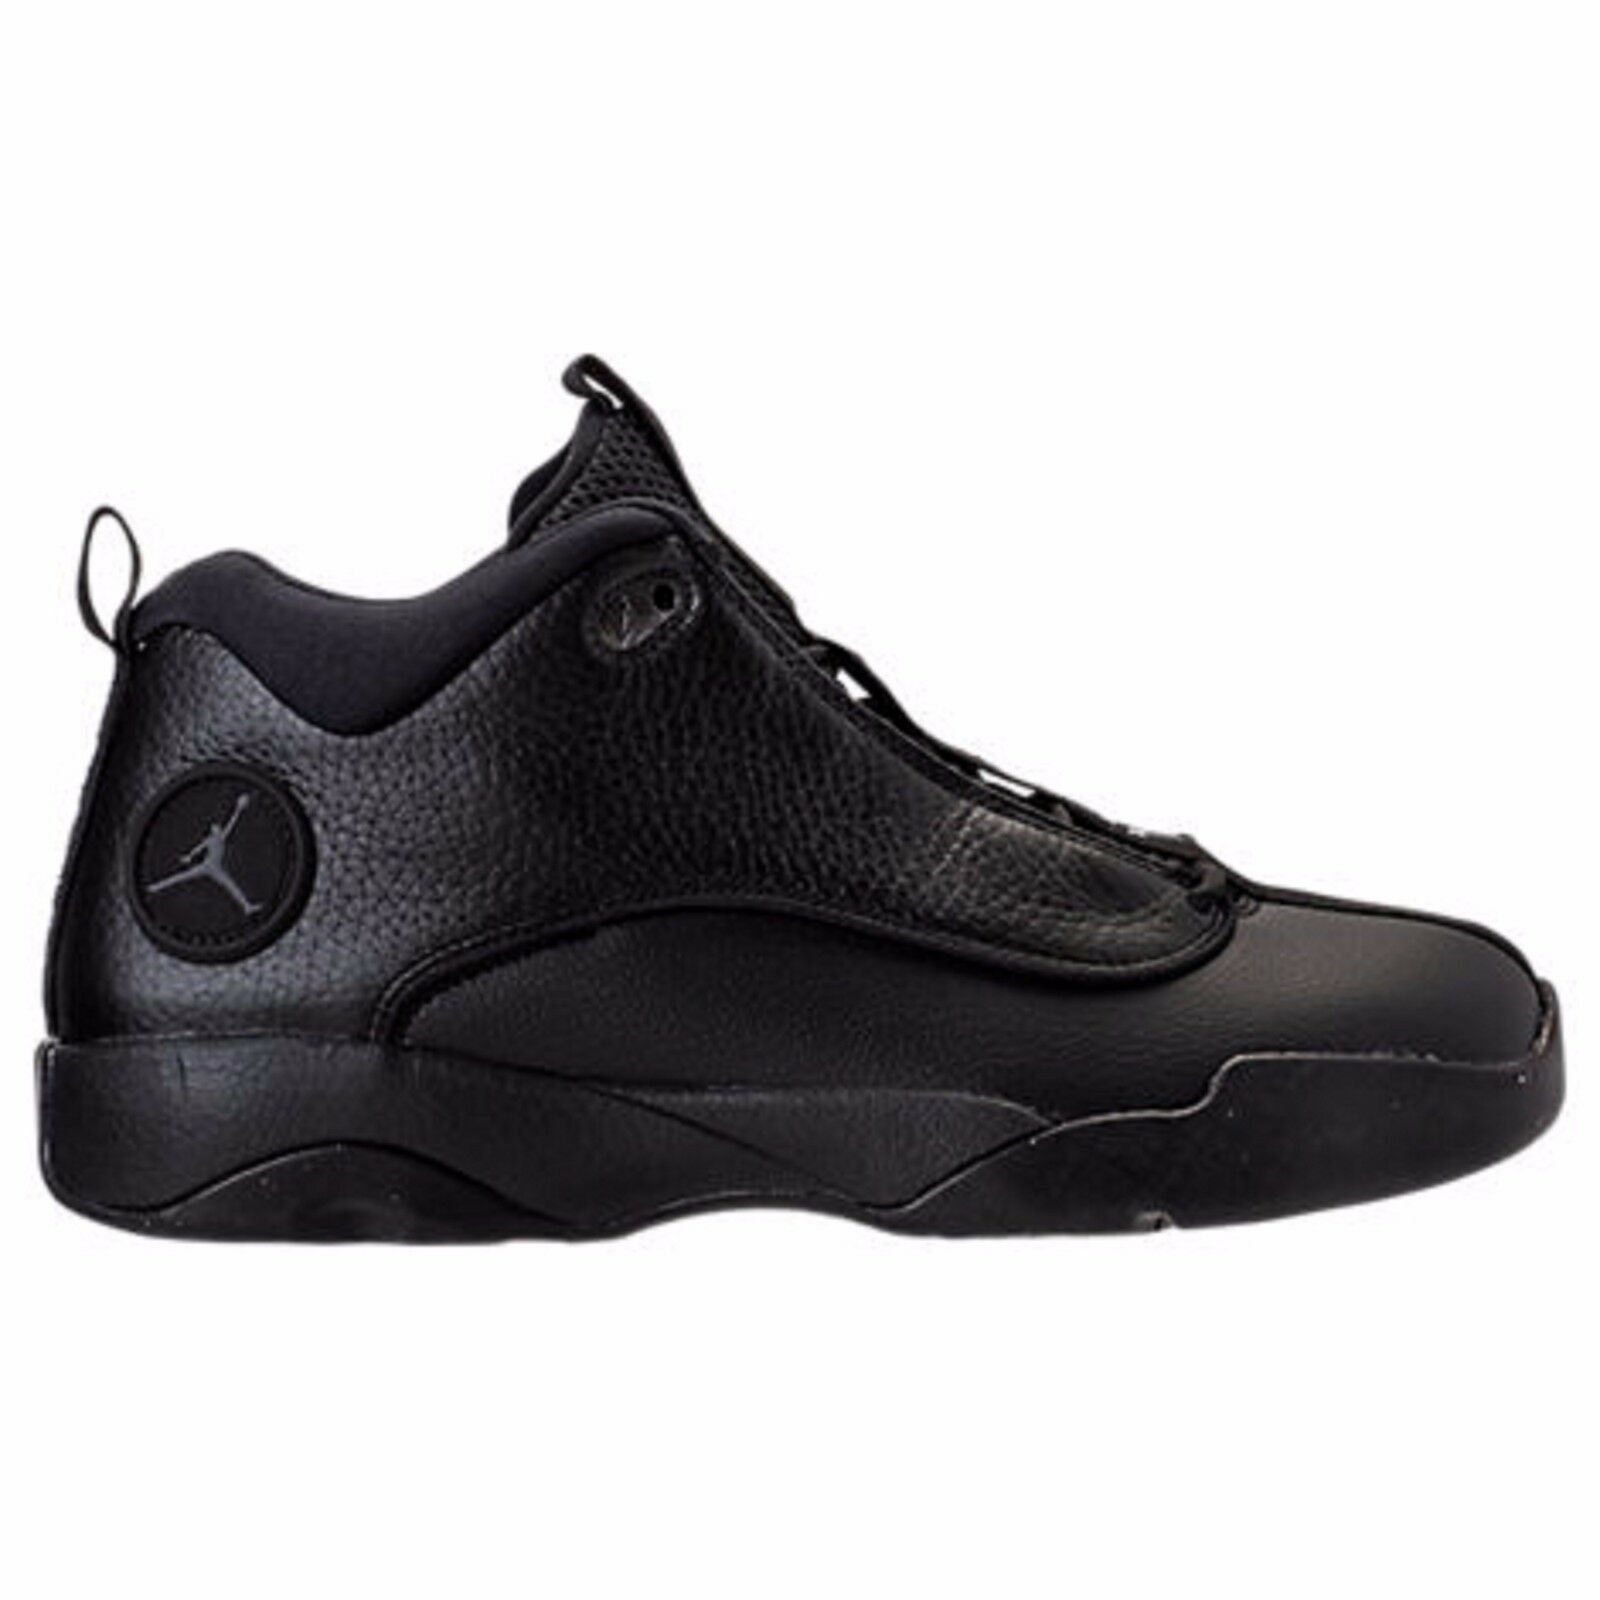 {932687-011} Men's Air Jordan Jumpman Pro Quick Mid Black/Dark Grey *NEW* New shoes for men and women, limited time discount